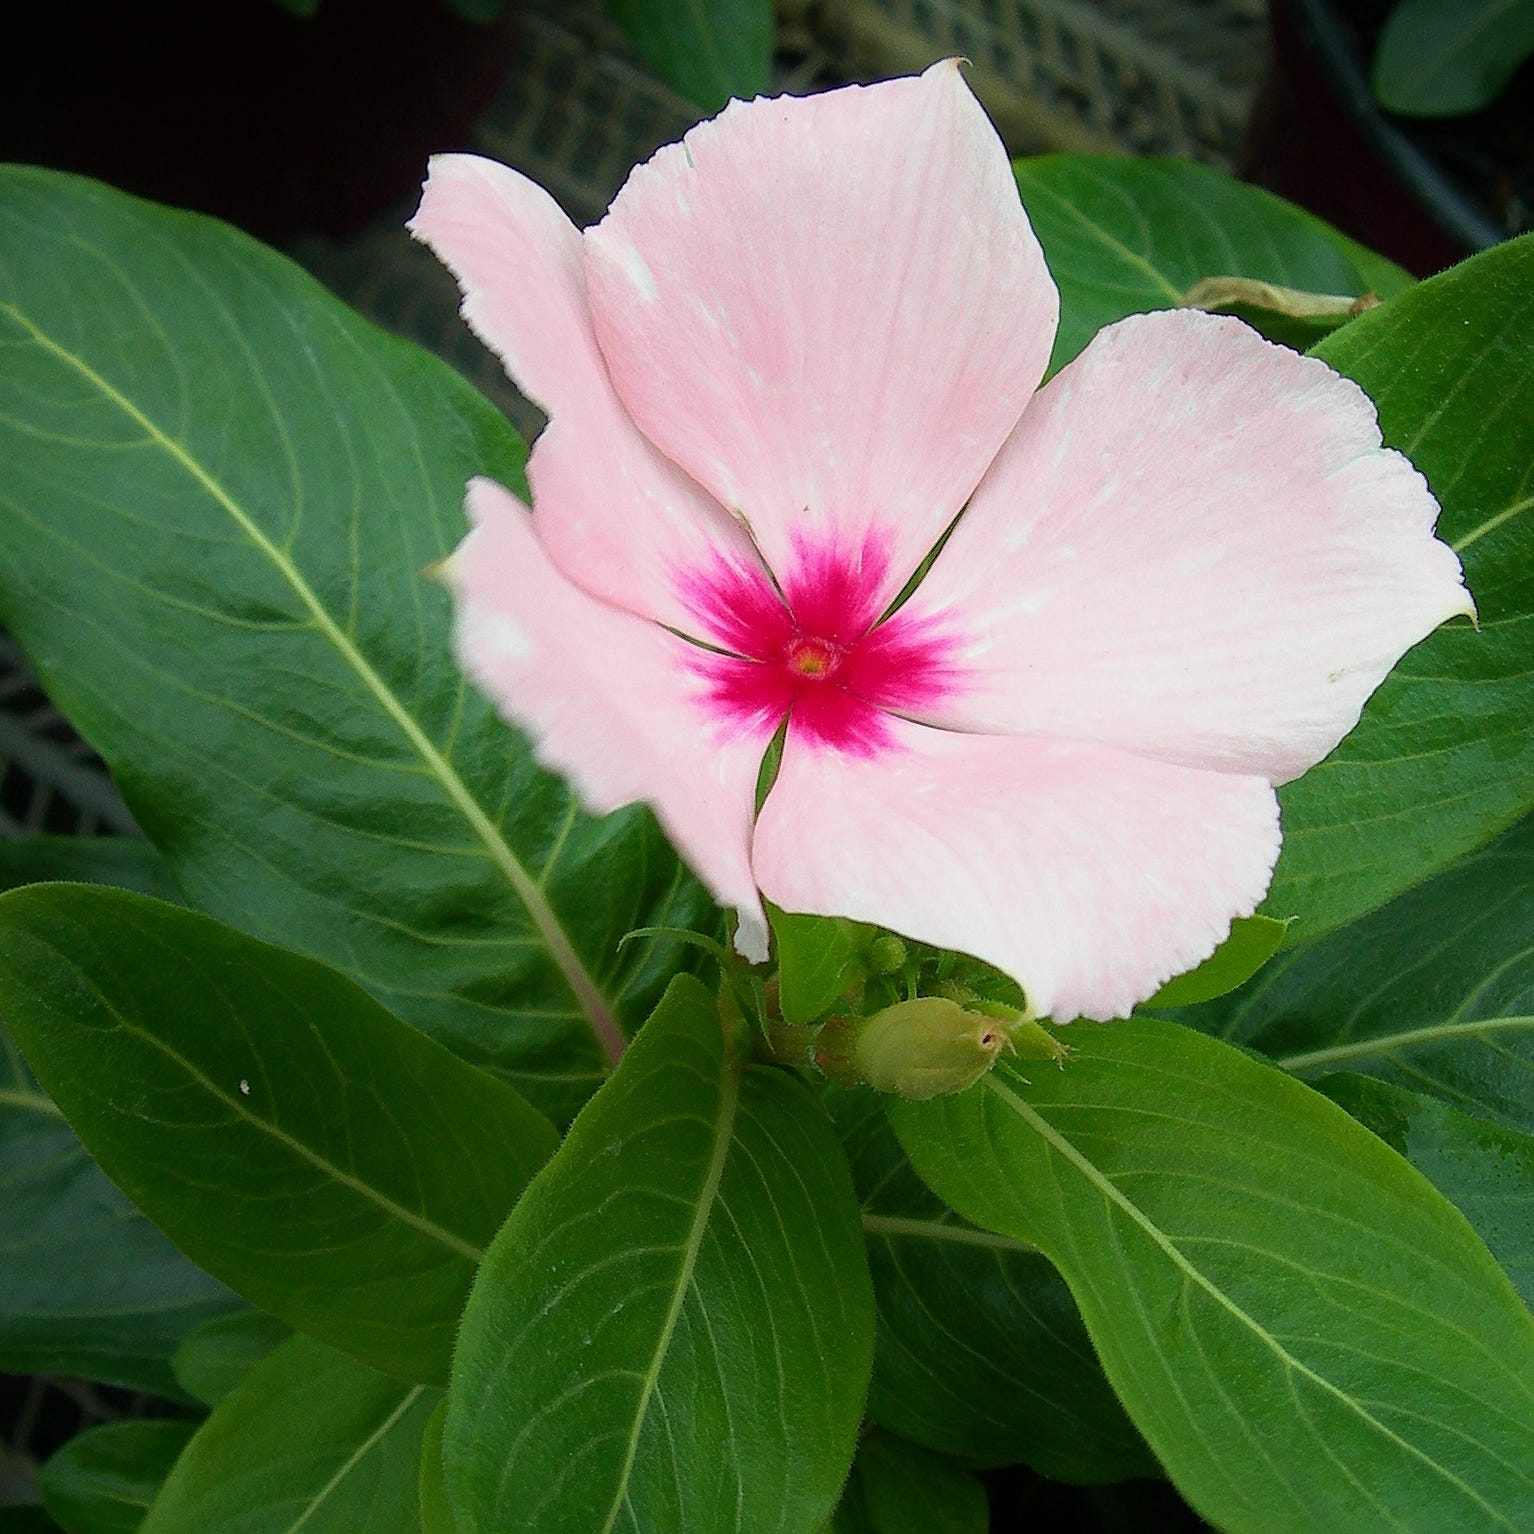 Madagascar periwinkle historically used to treat wide variety of diseases